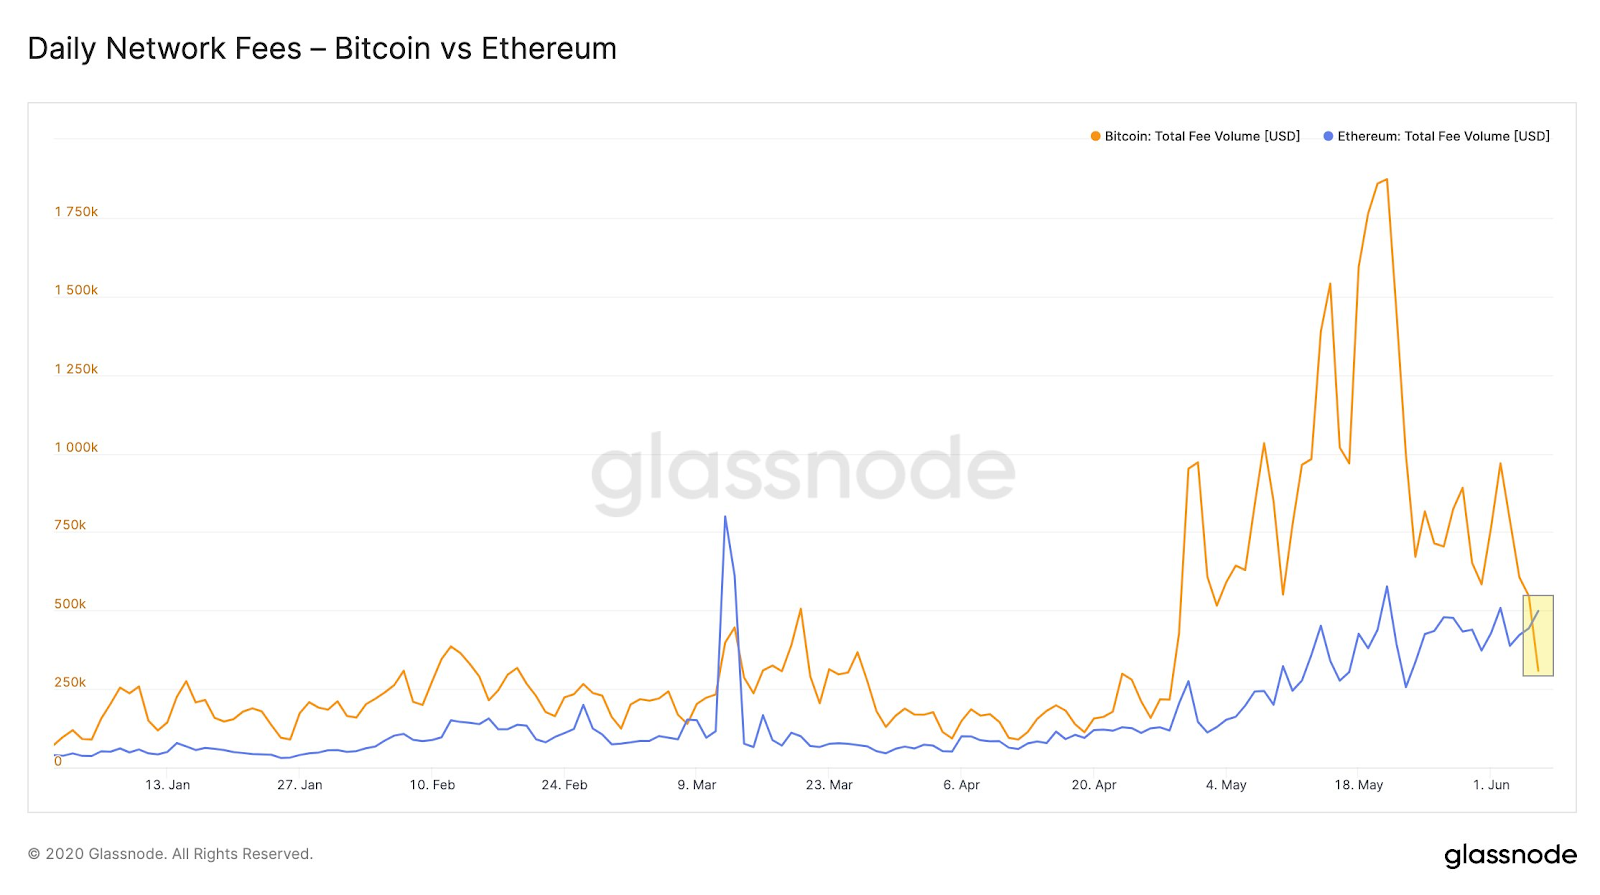 Graph comparing the daily network fees on Bitcoin and Ethereum in 2020